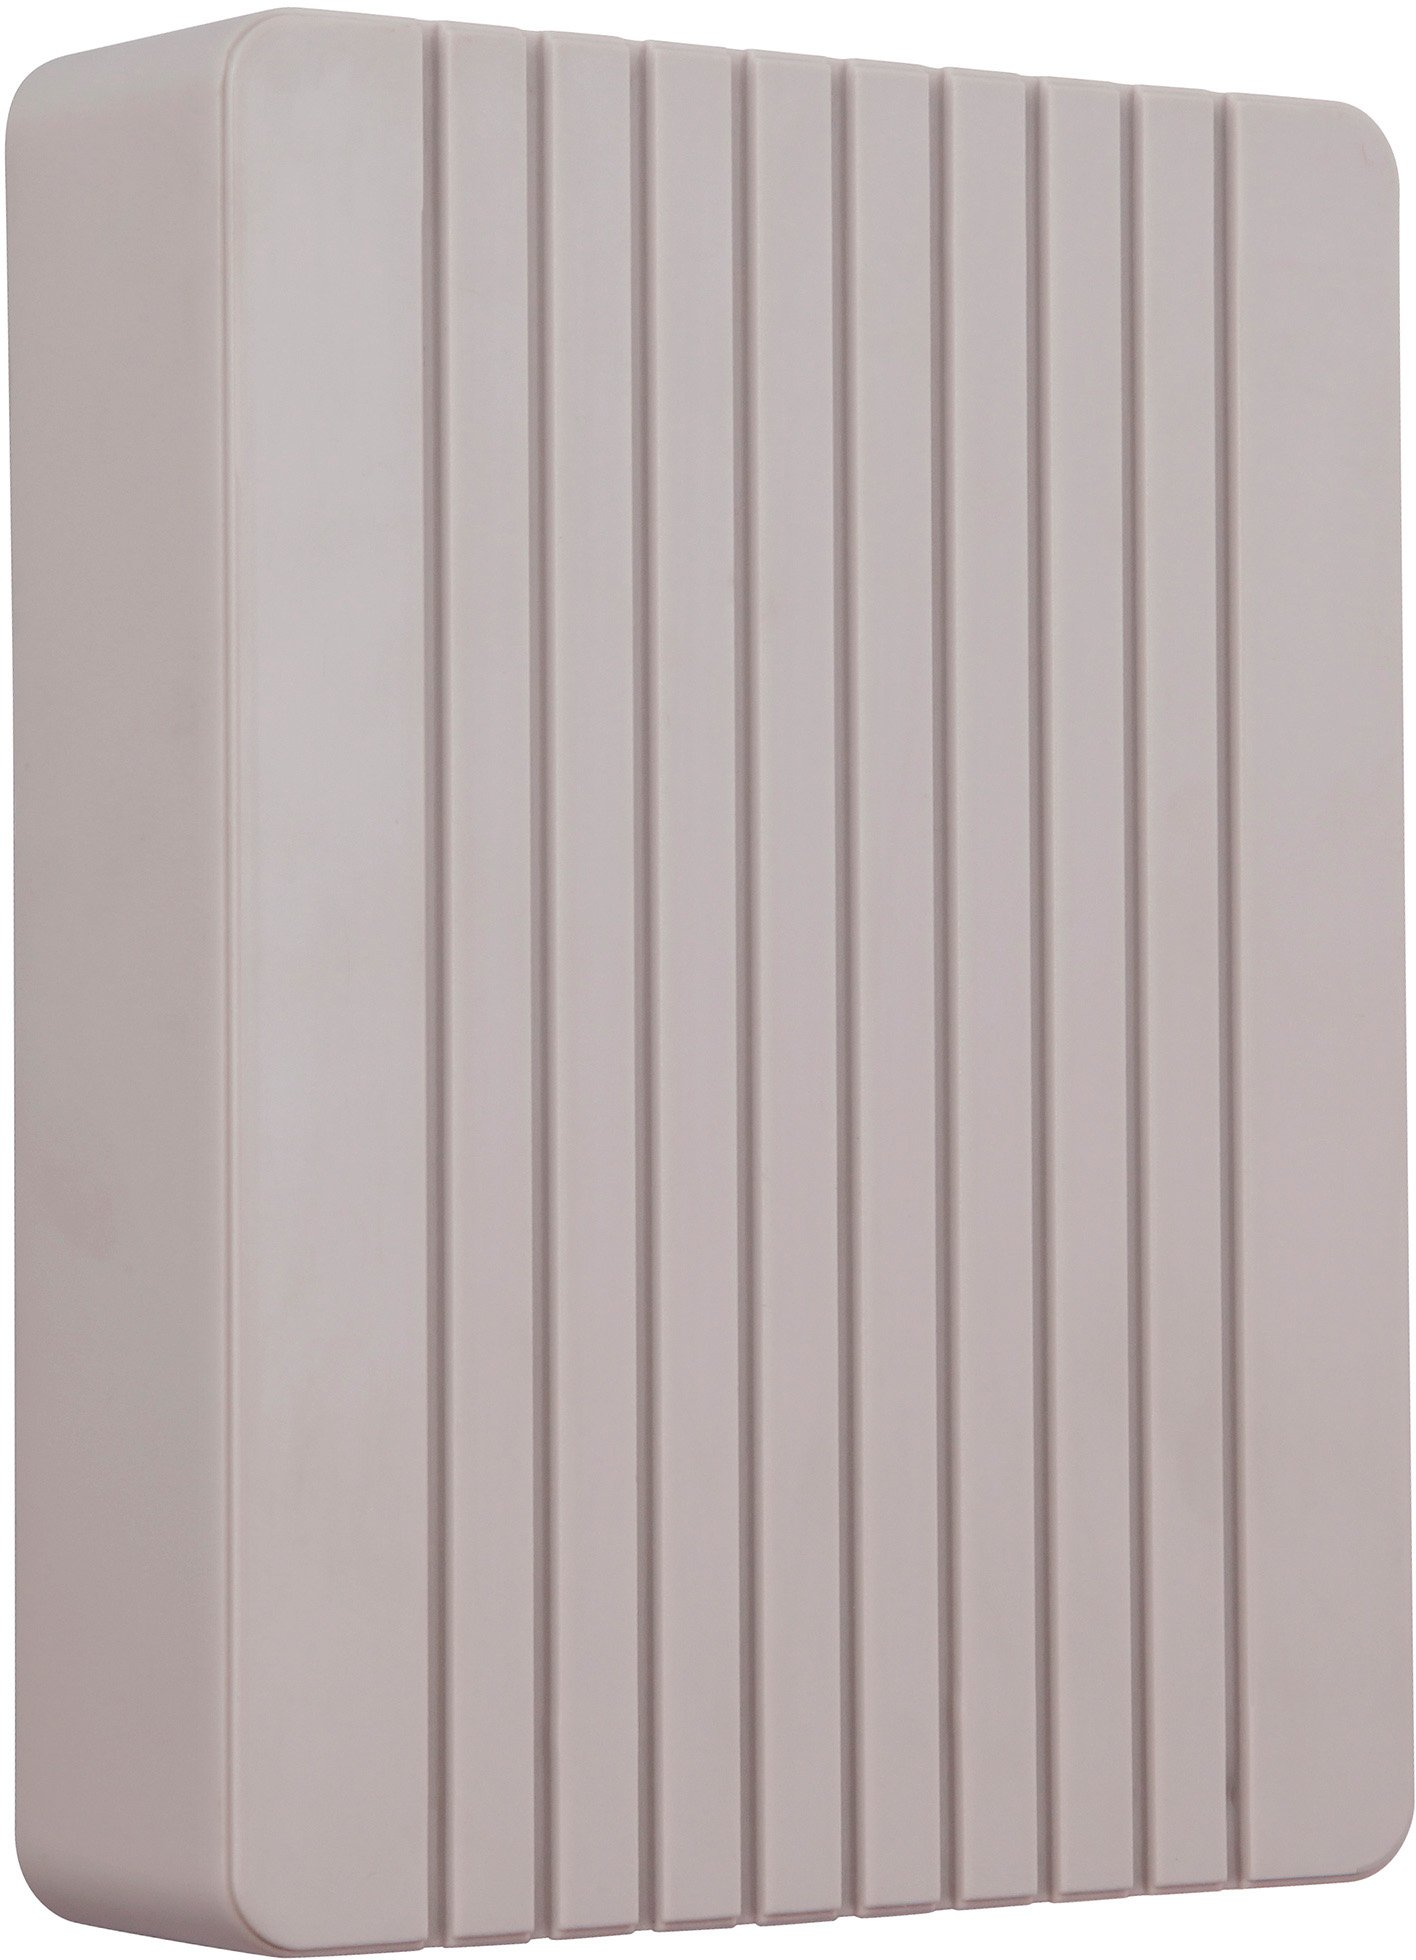 Craftmade CBB-FRG Designer Grooved Cover Door Chime, French Grey (8''H x 6.13''W)